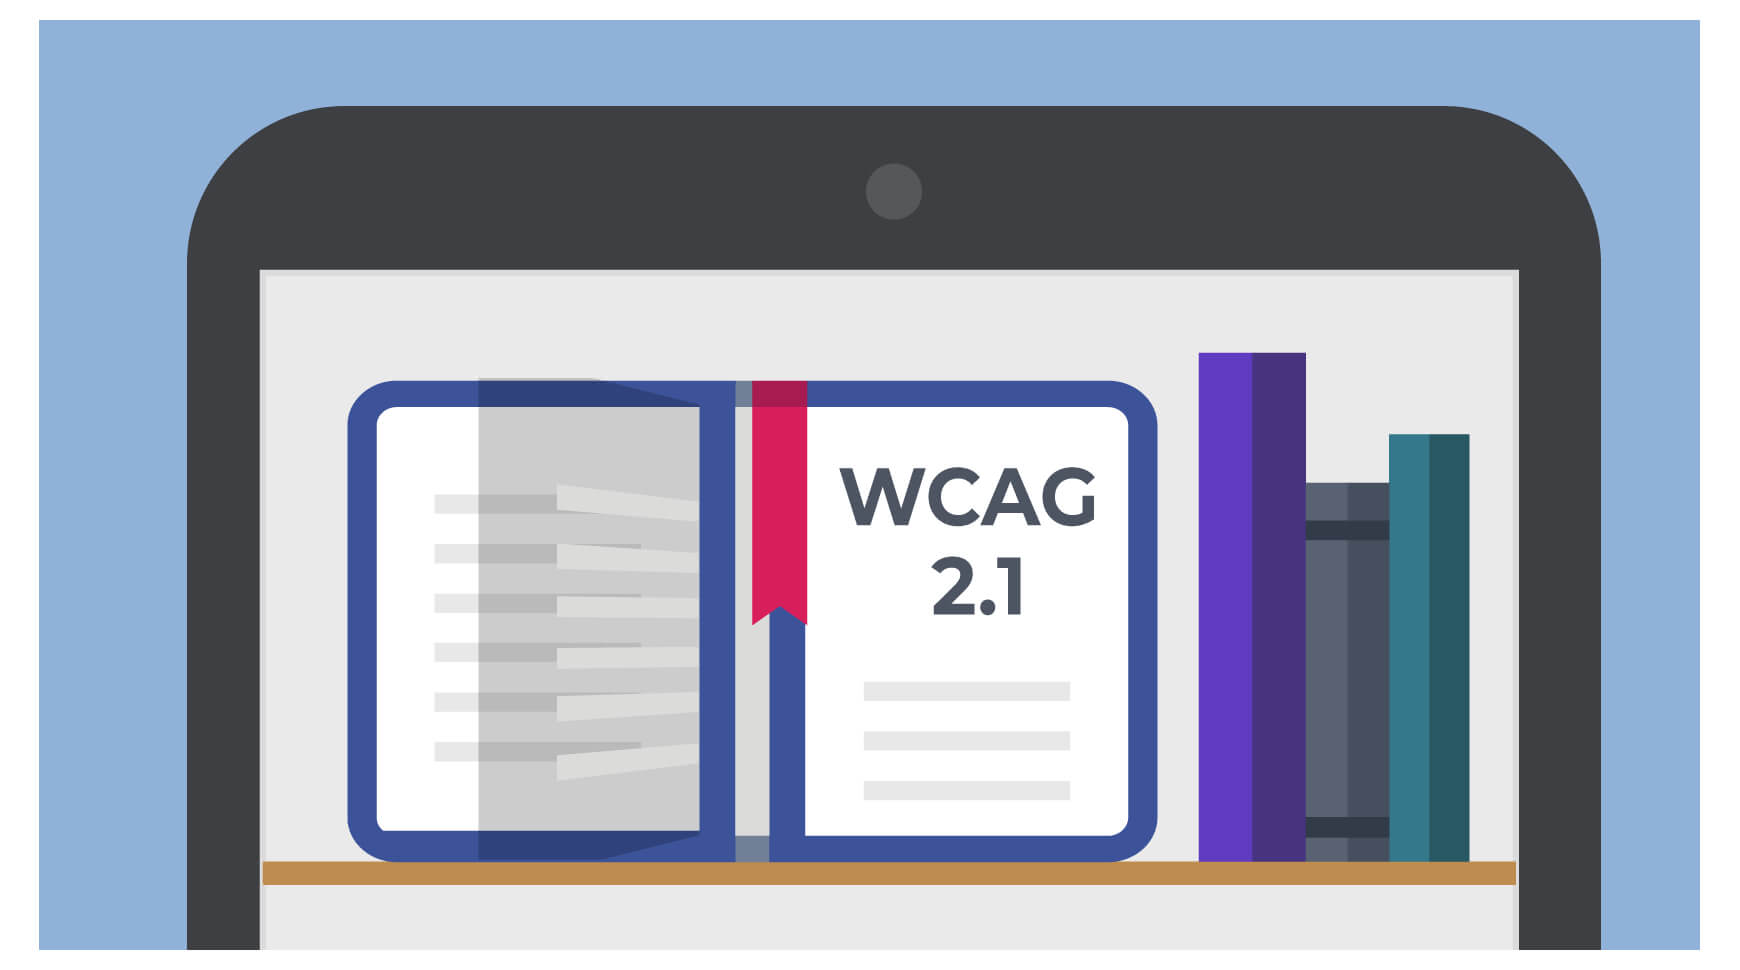 WCAG 2.1 on a mobile device